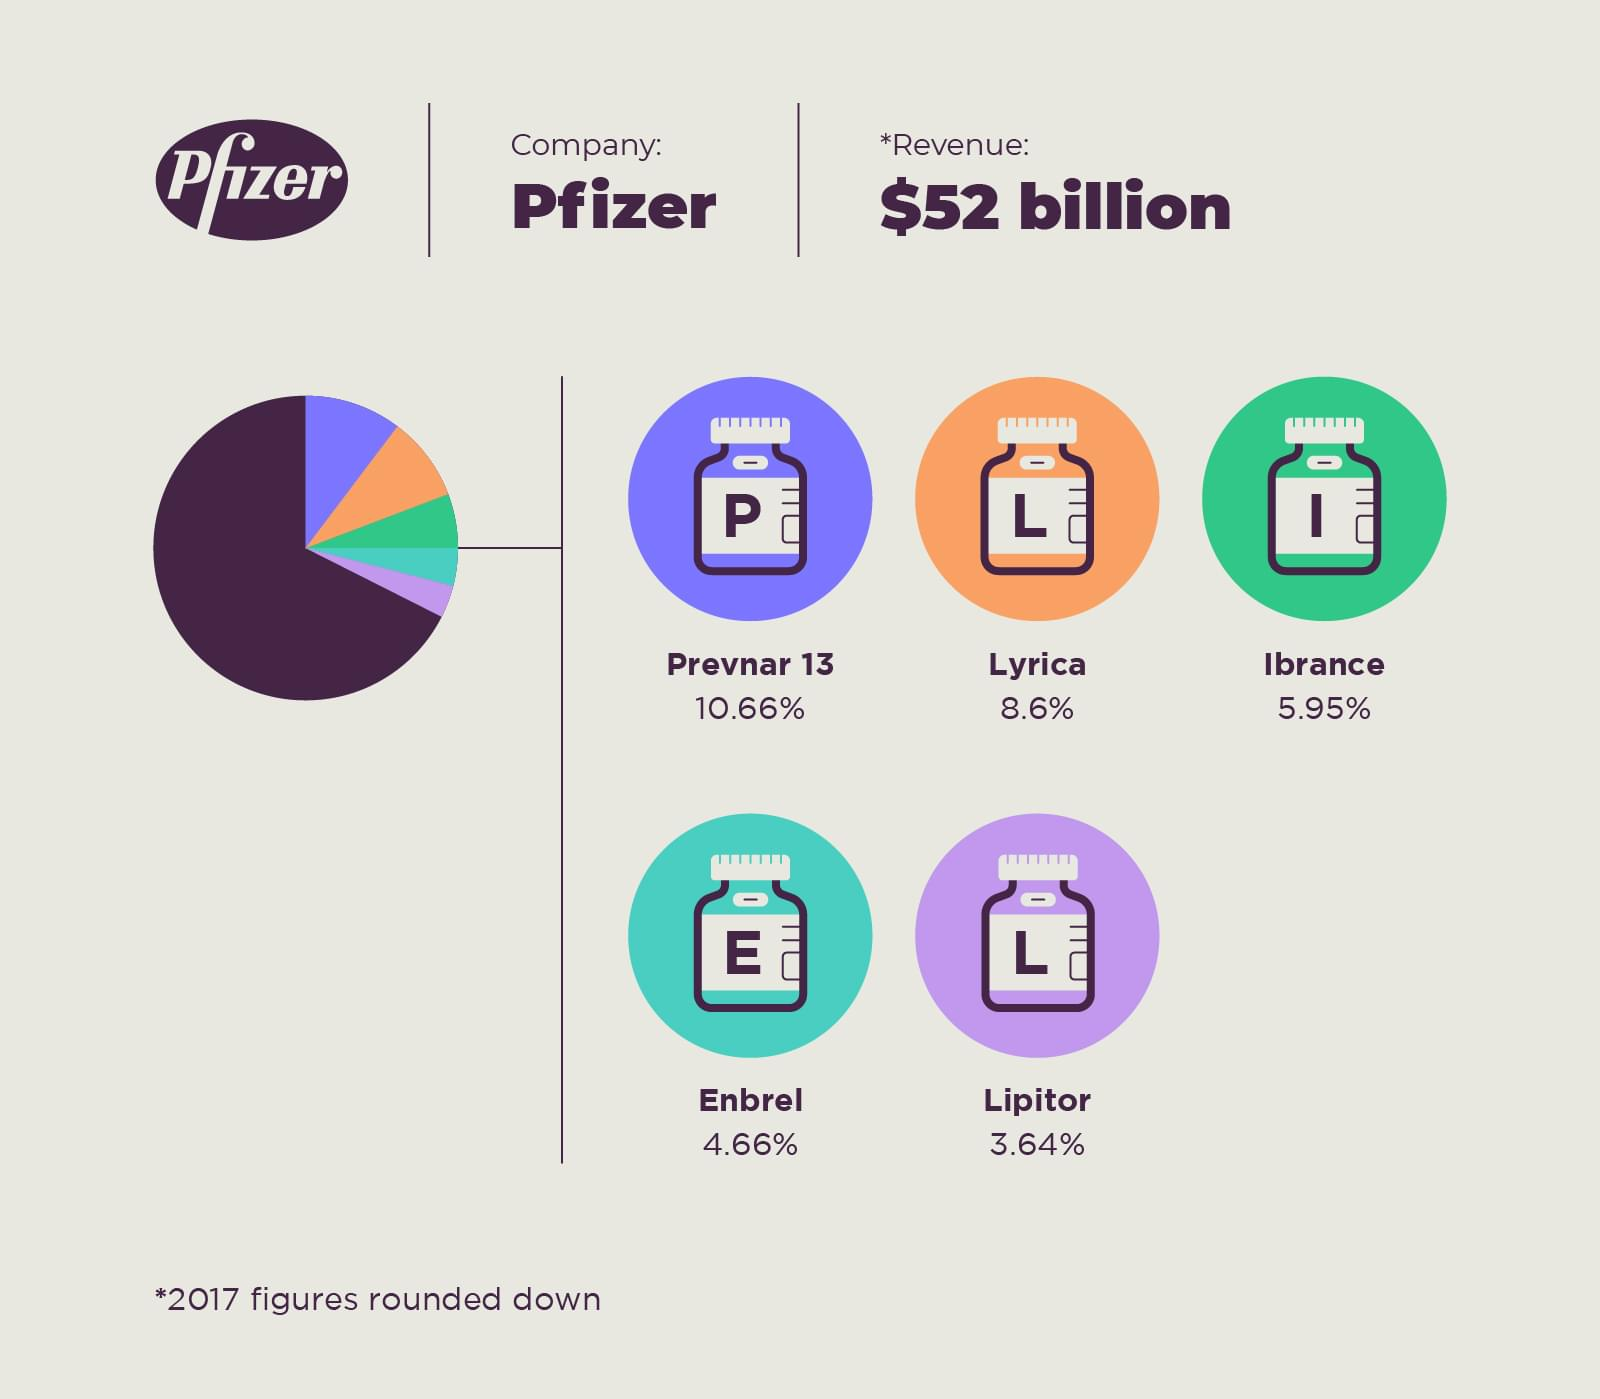 The Pharmaceutical products that carry the revenue growth of pfizer